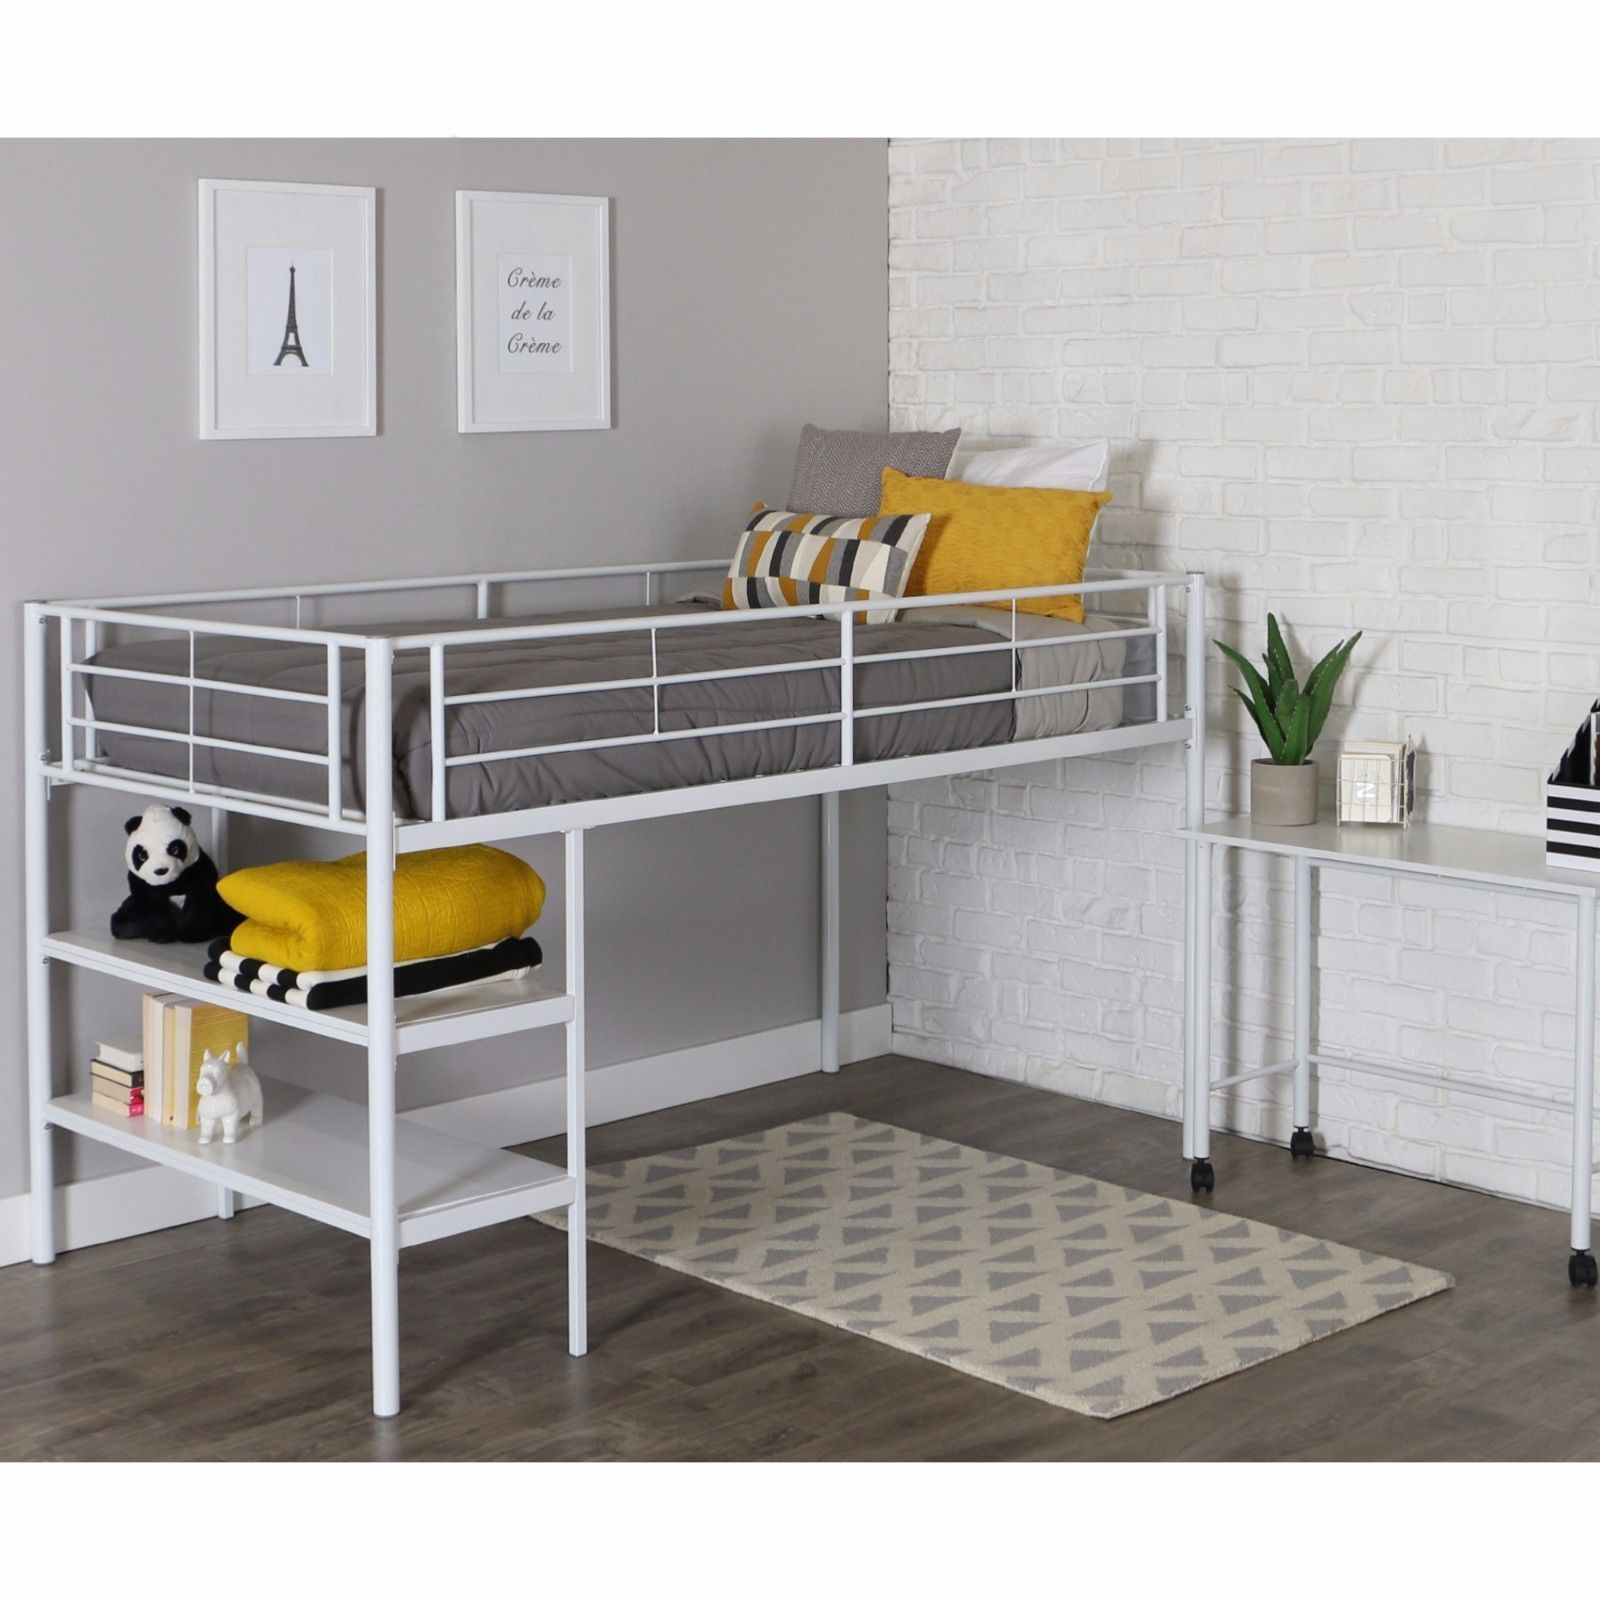 Picture 1 of 1 Low loft beds, Daybed bedding, Bed furniture